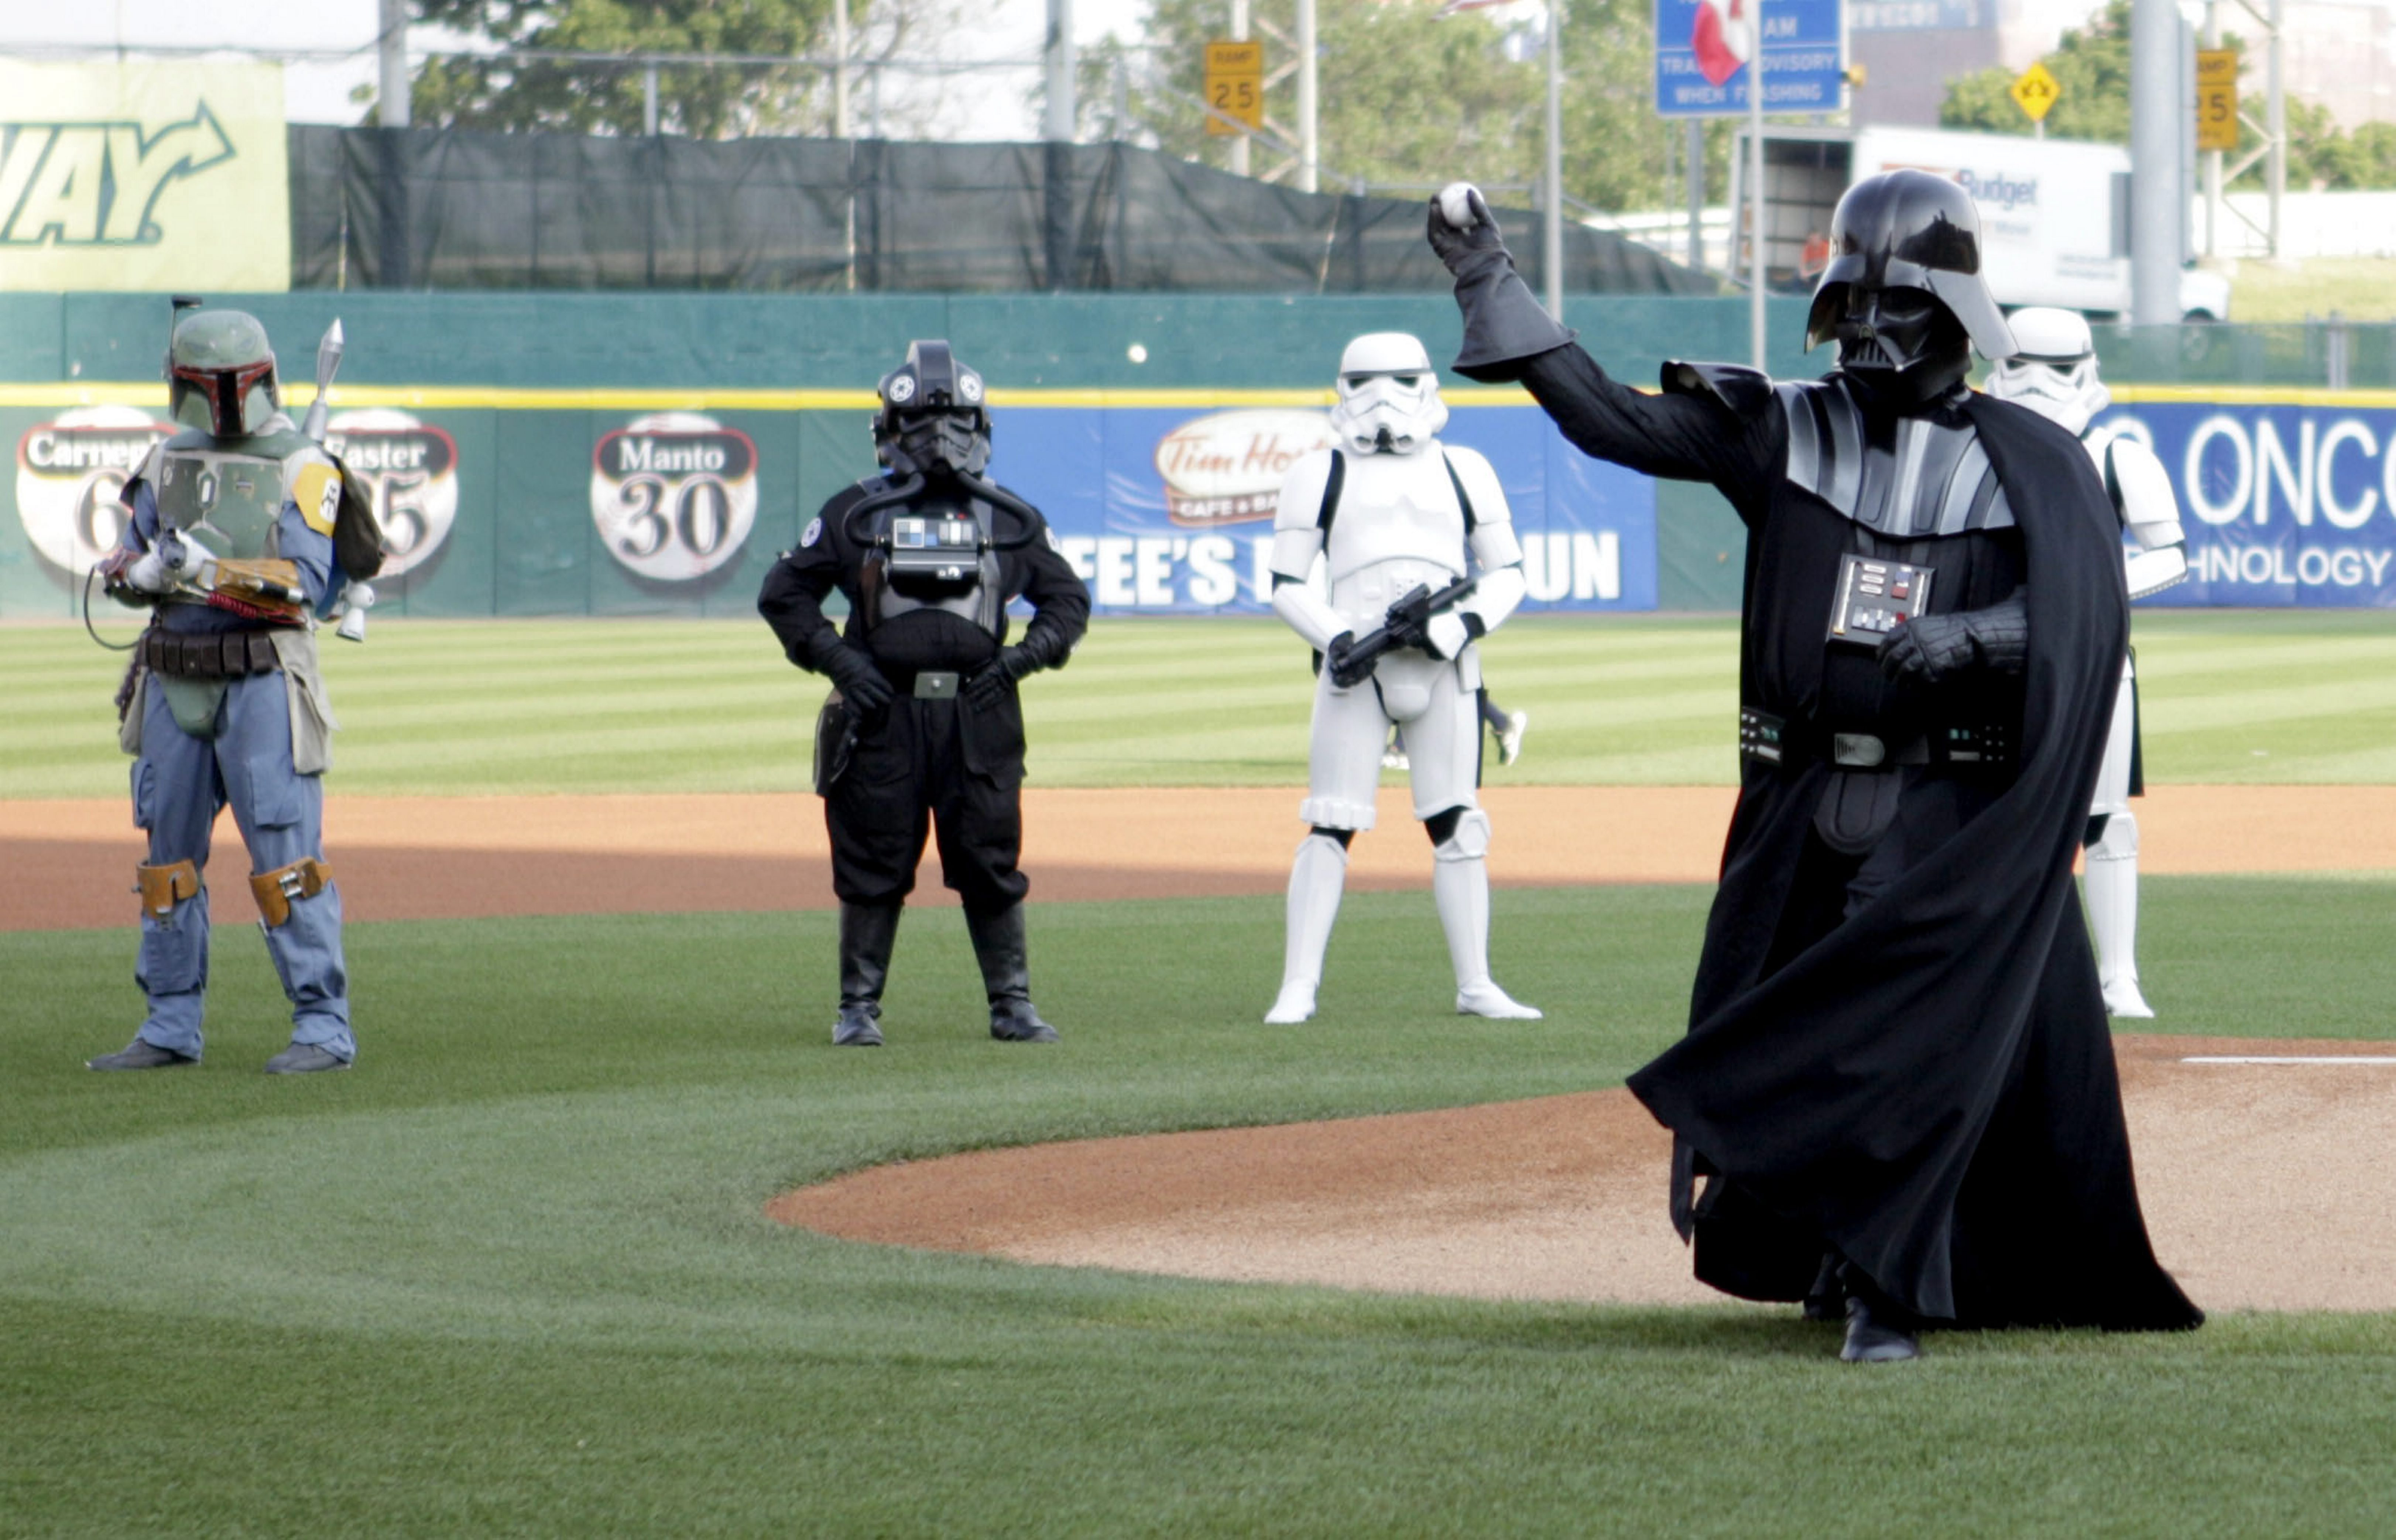 Darth Vader tosses out the first pitch at the 2013 Star Wars Night, which took place during a game against the Durham Bulls on June 22.